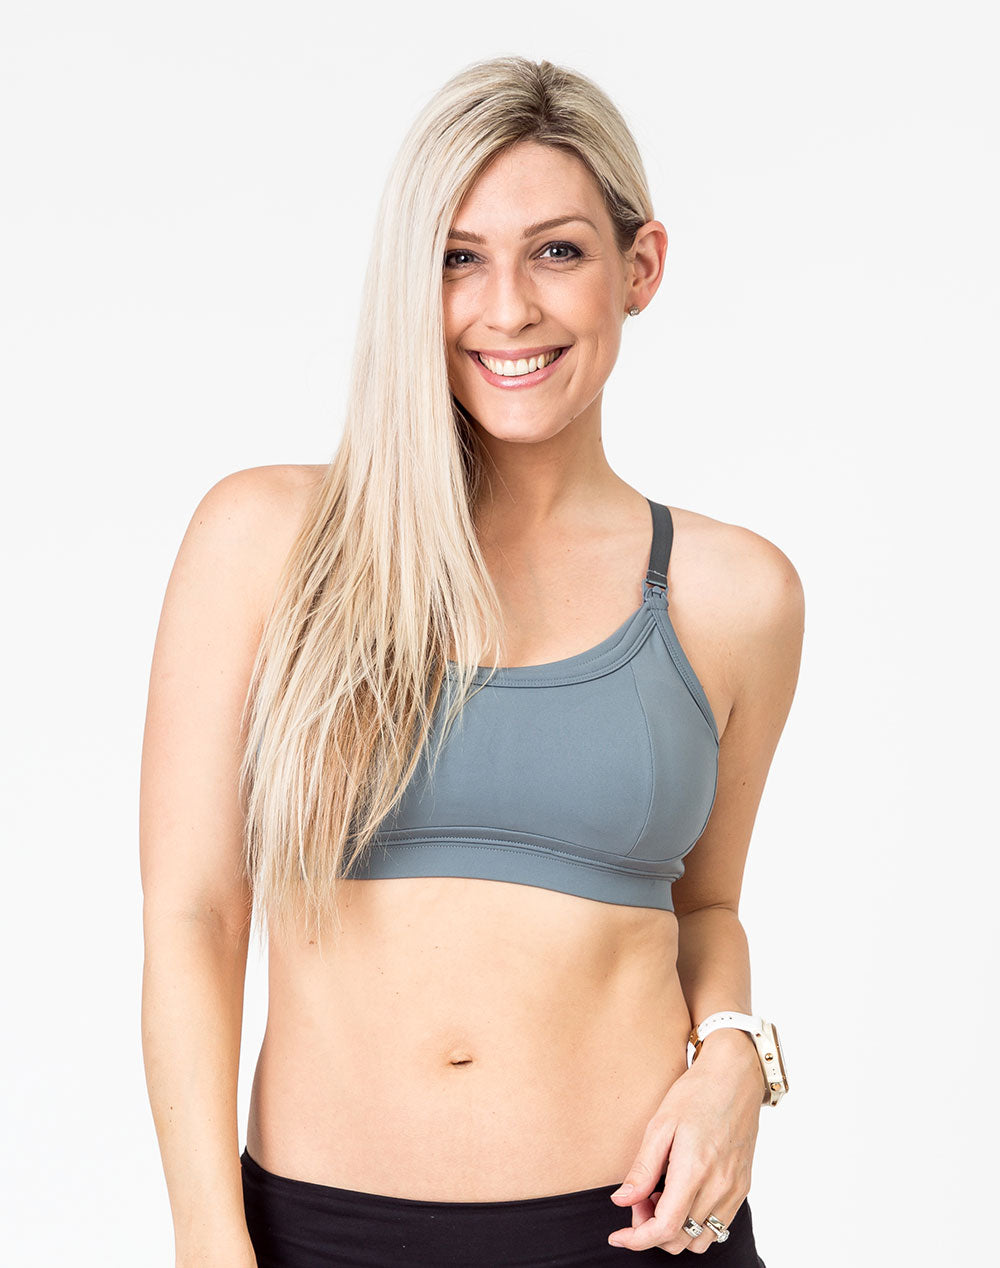 front view of a mom wearing a gray racerback nursing bra